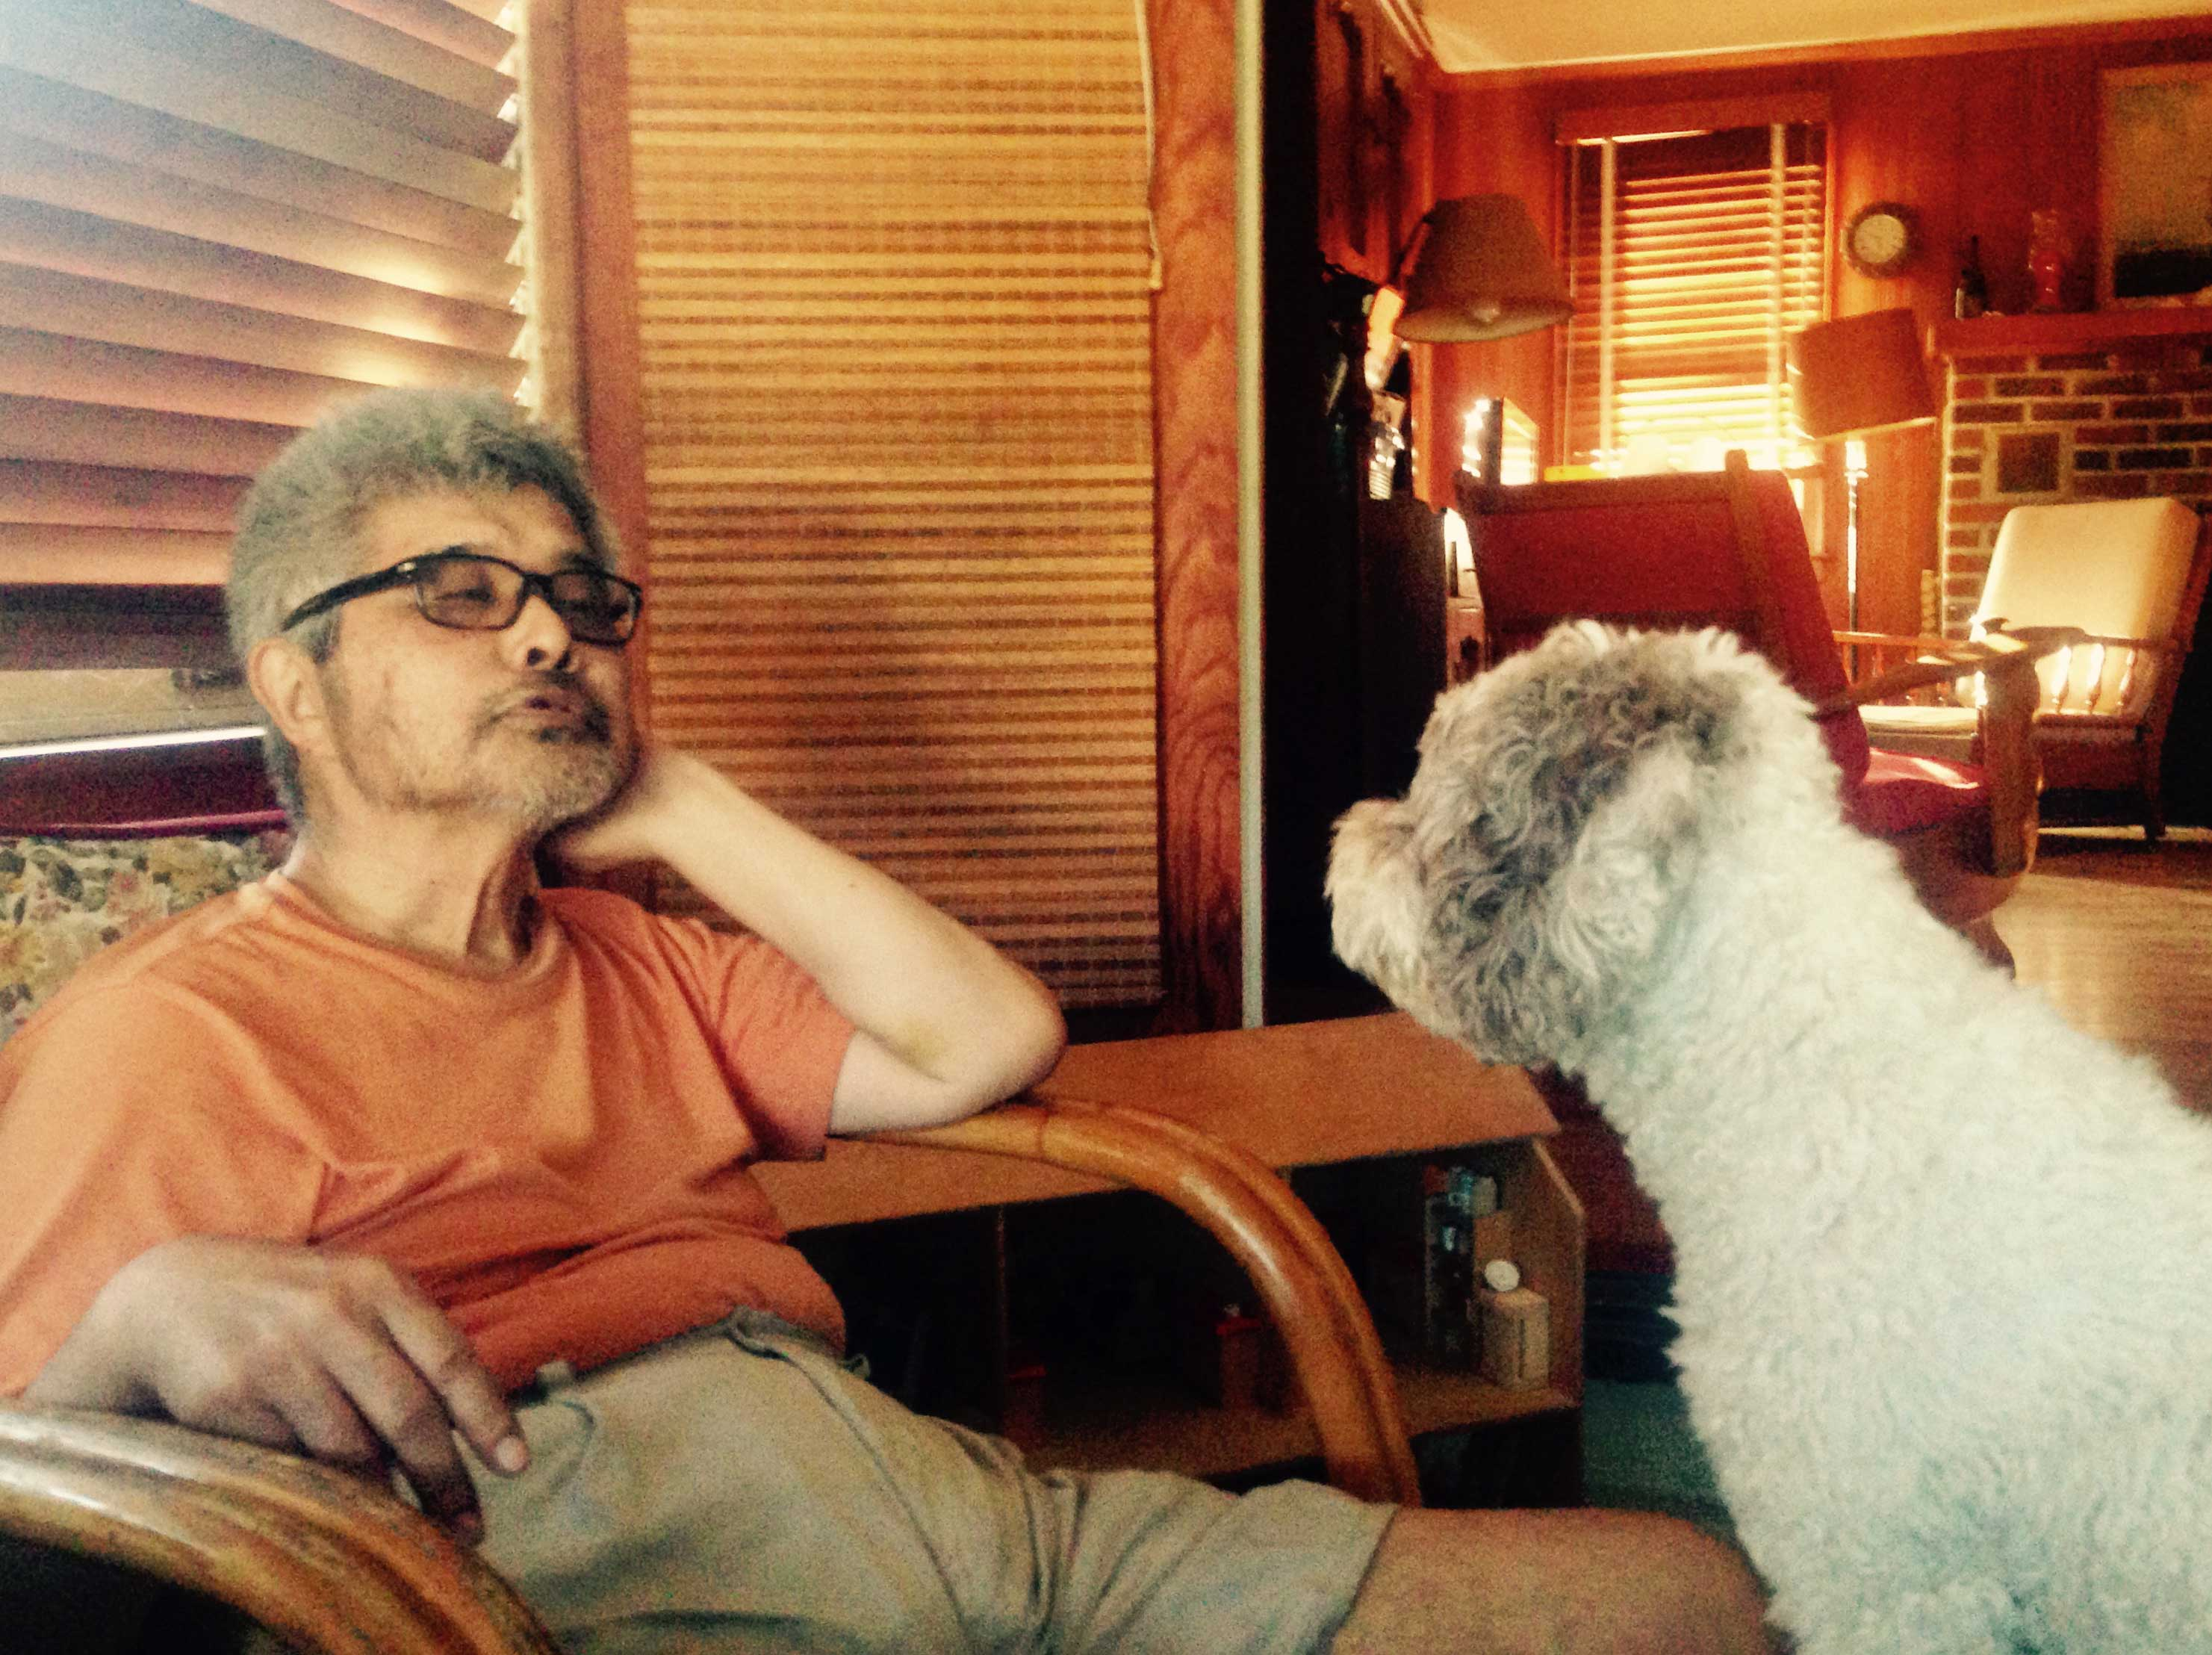 Susumu with his dog, Delice, at Long Beach Island